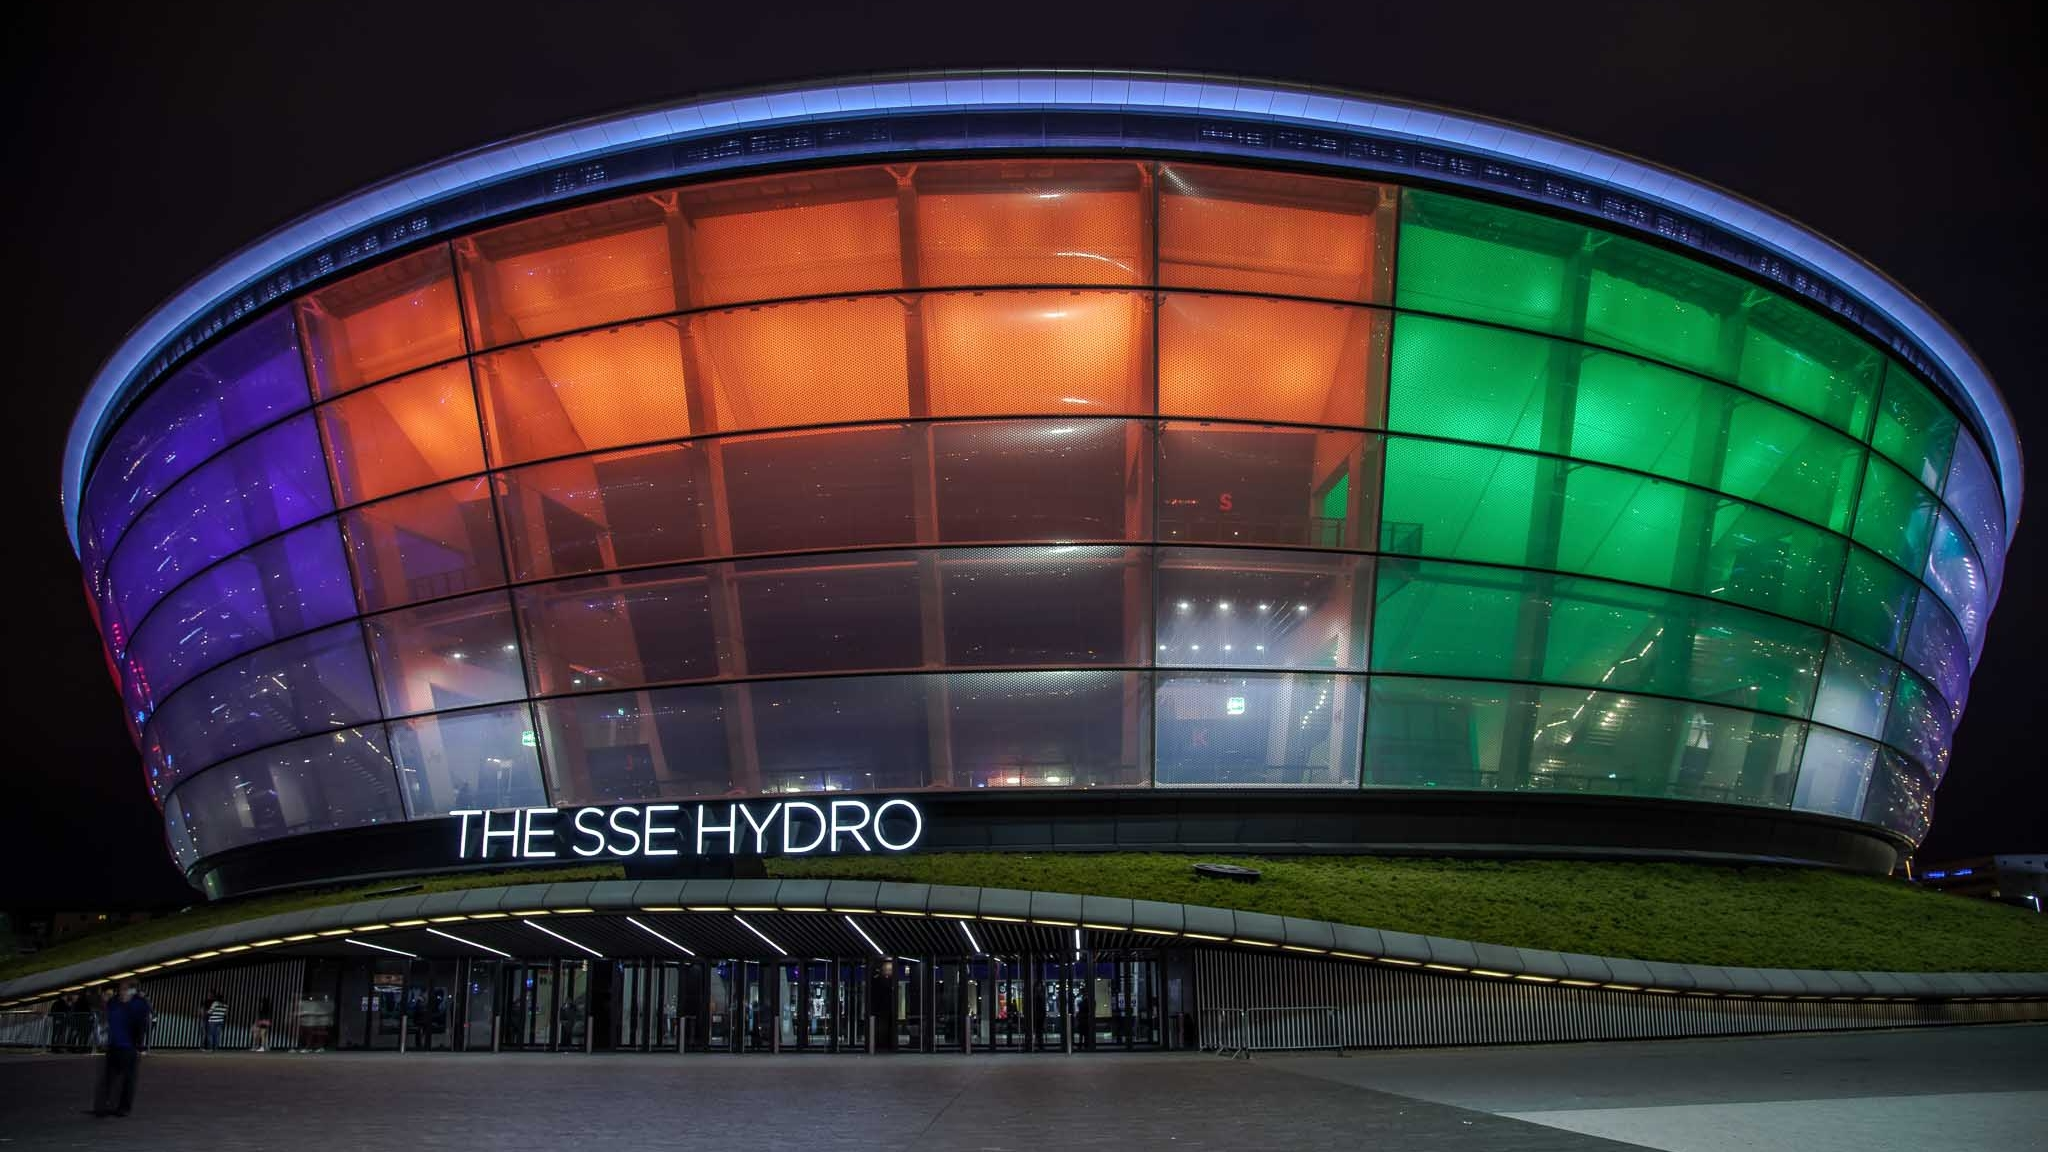 The SSE Hydro shot by Space21 Photography & Media